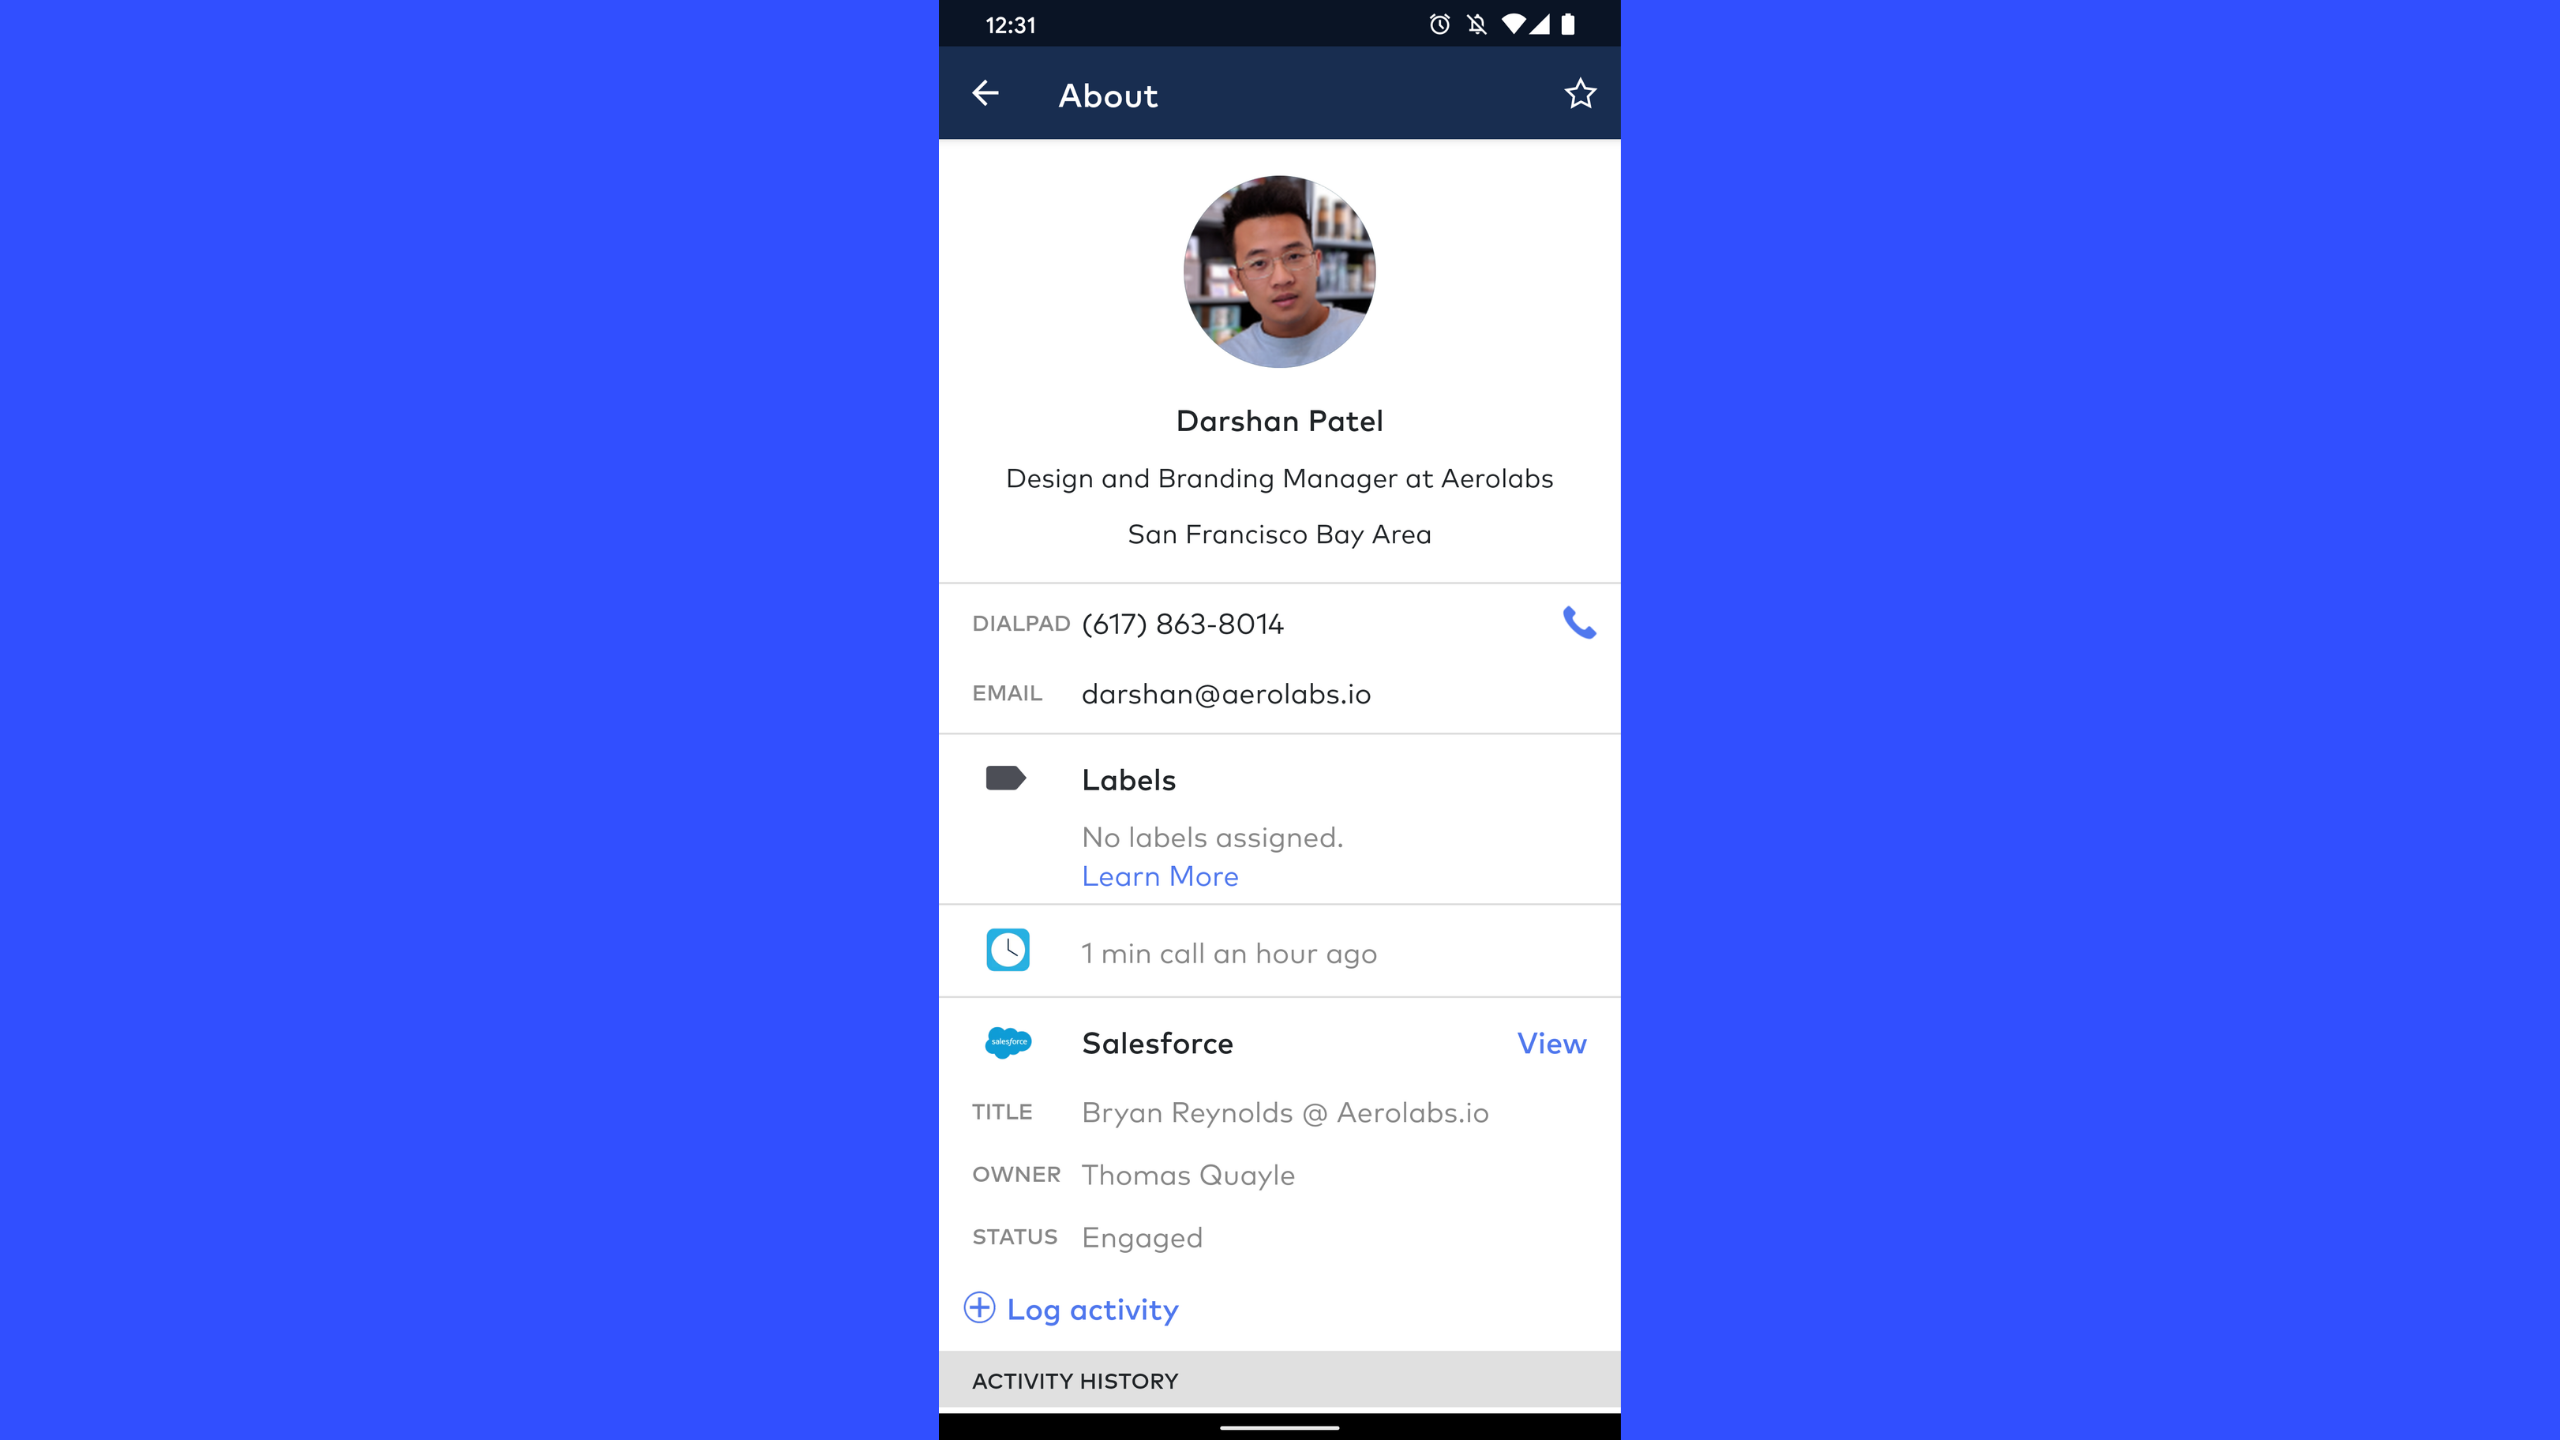 dp-android-app-contact-profile.png